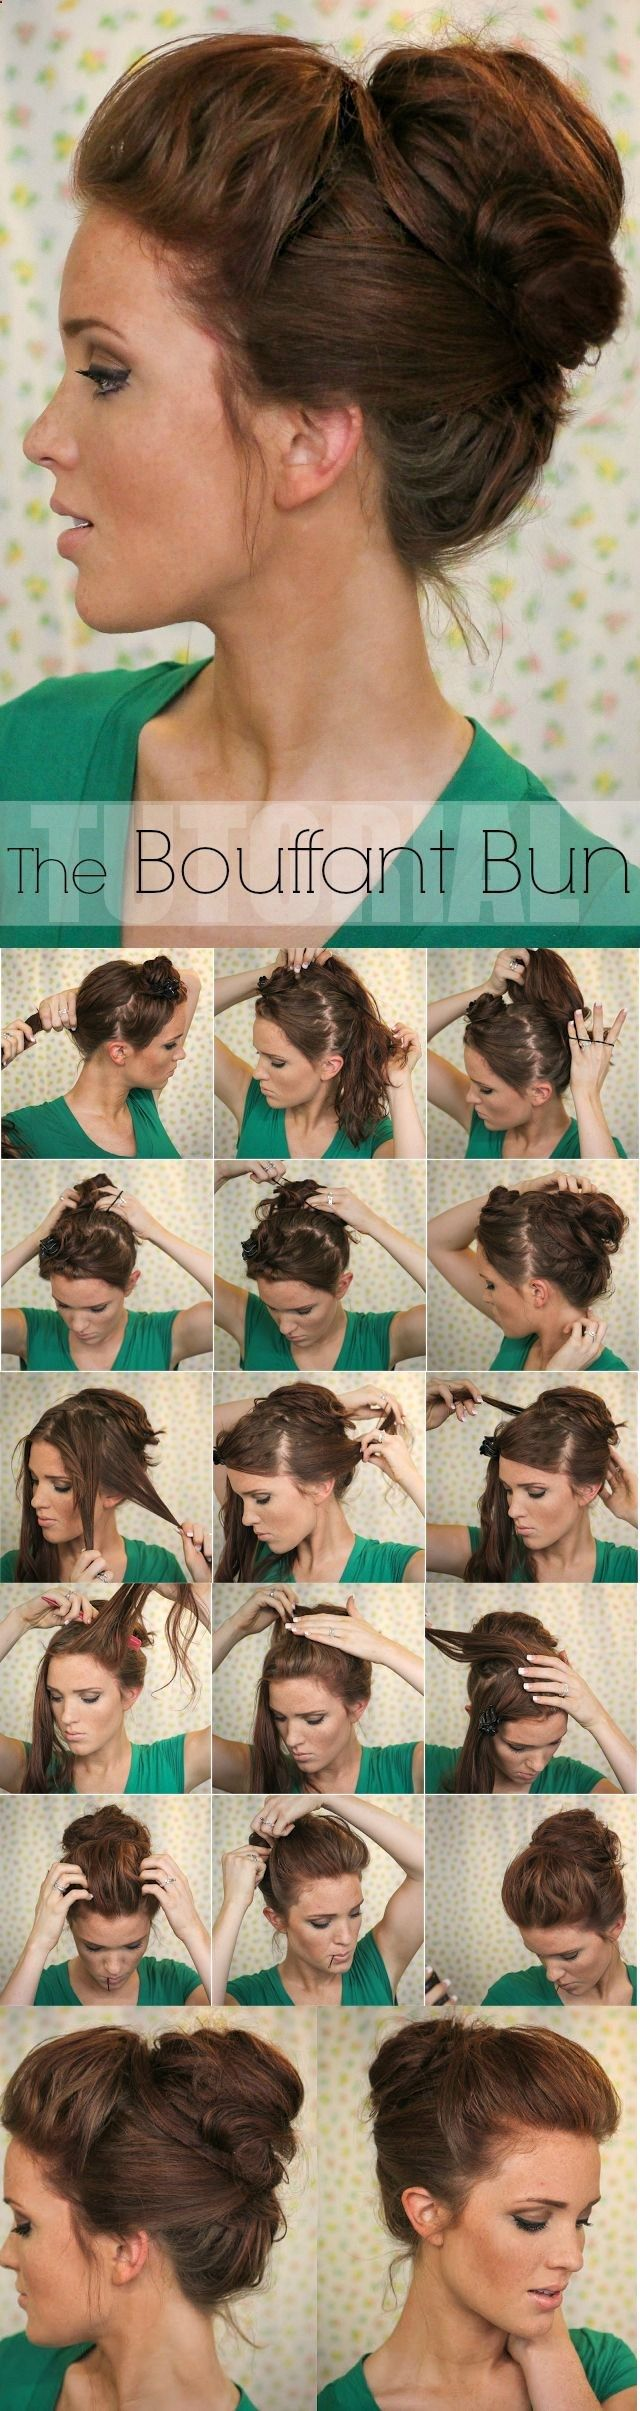 Surprising 1000 Images About Going Out Hair On Pinterest Updo Buns And Short Hairstyles Gunalazisus